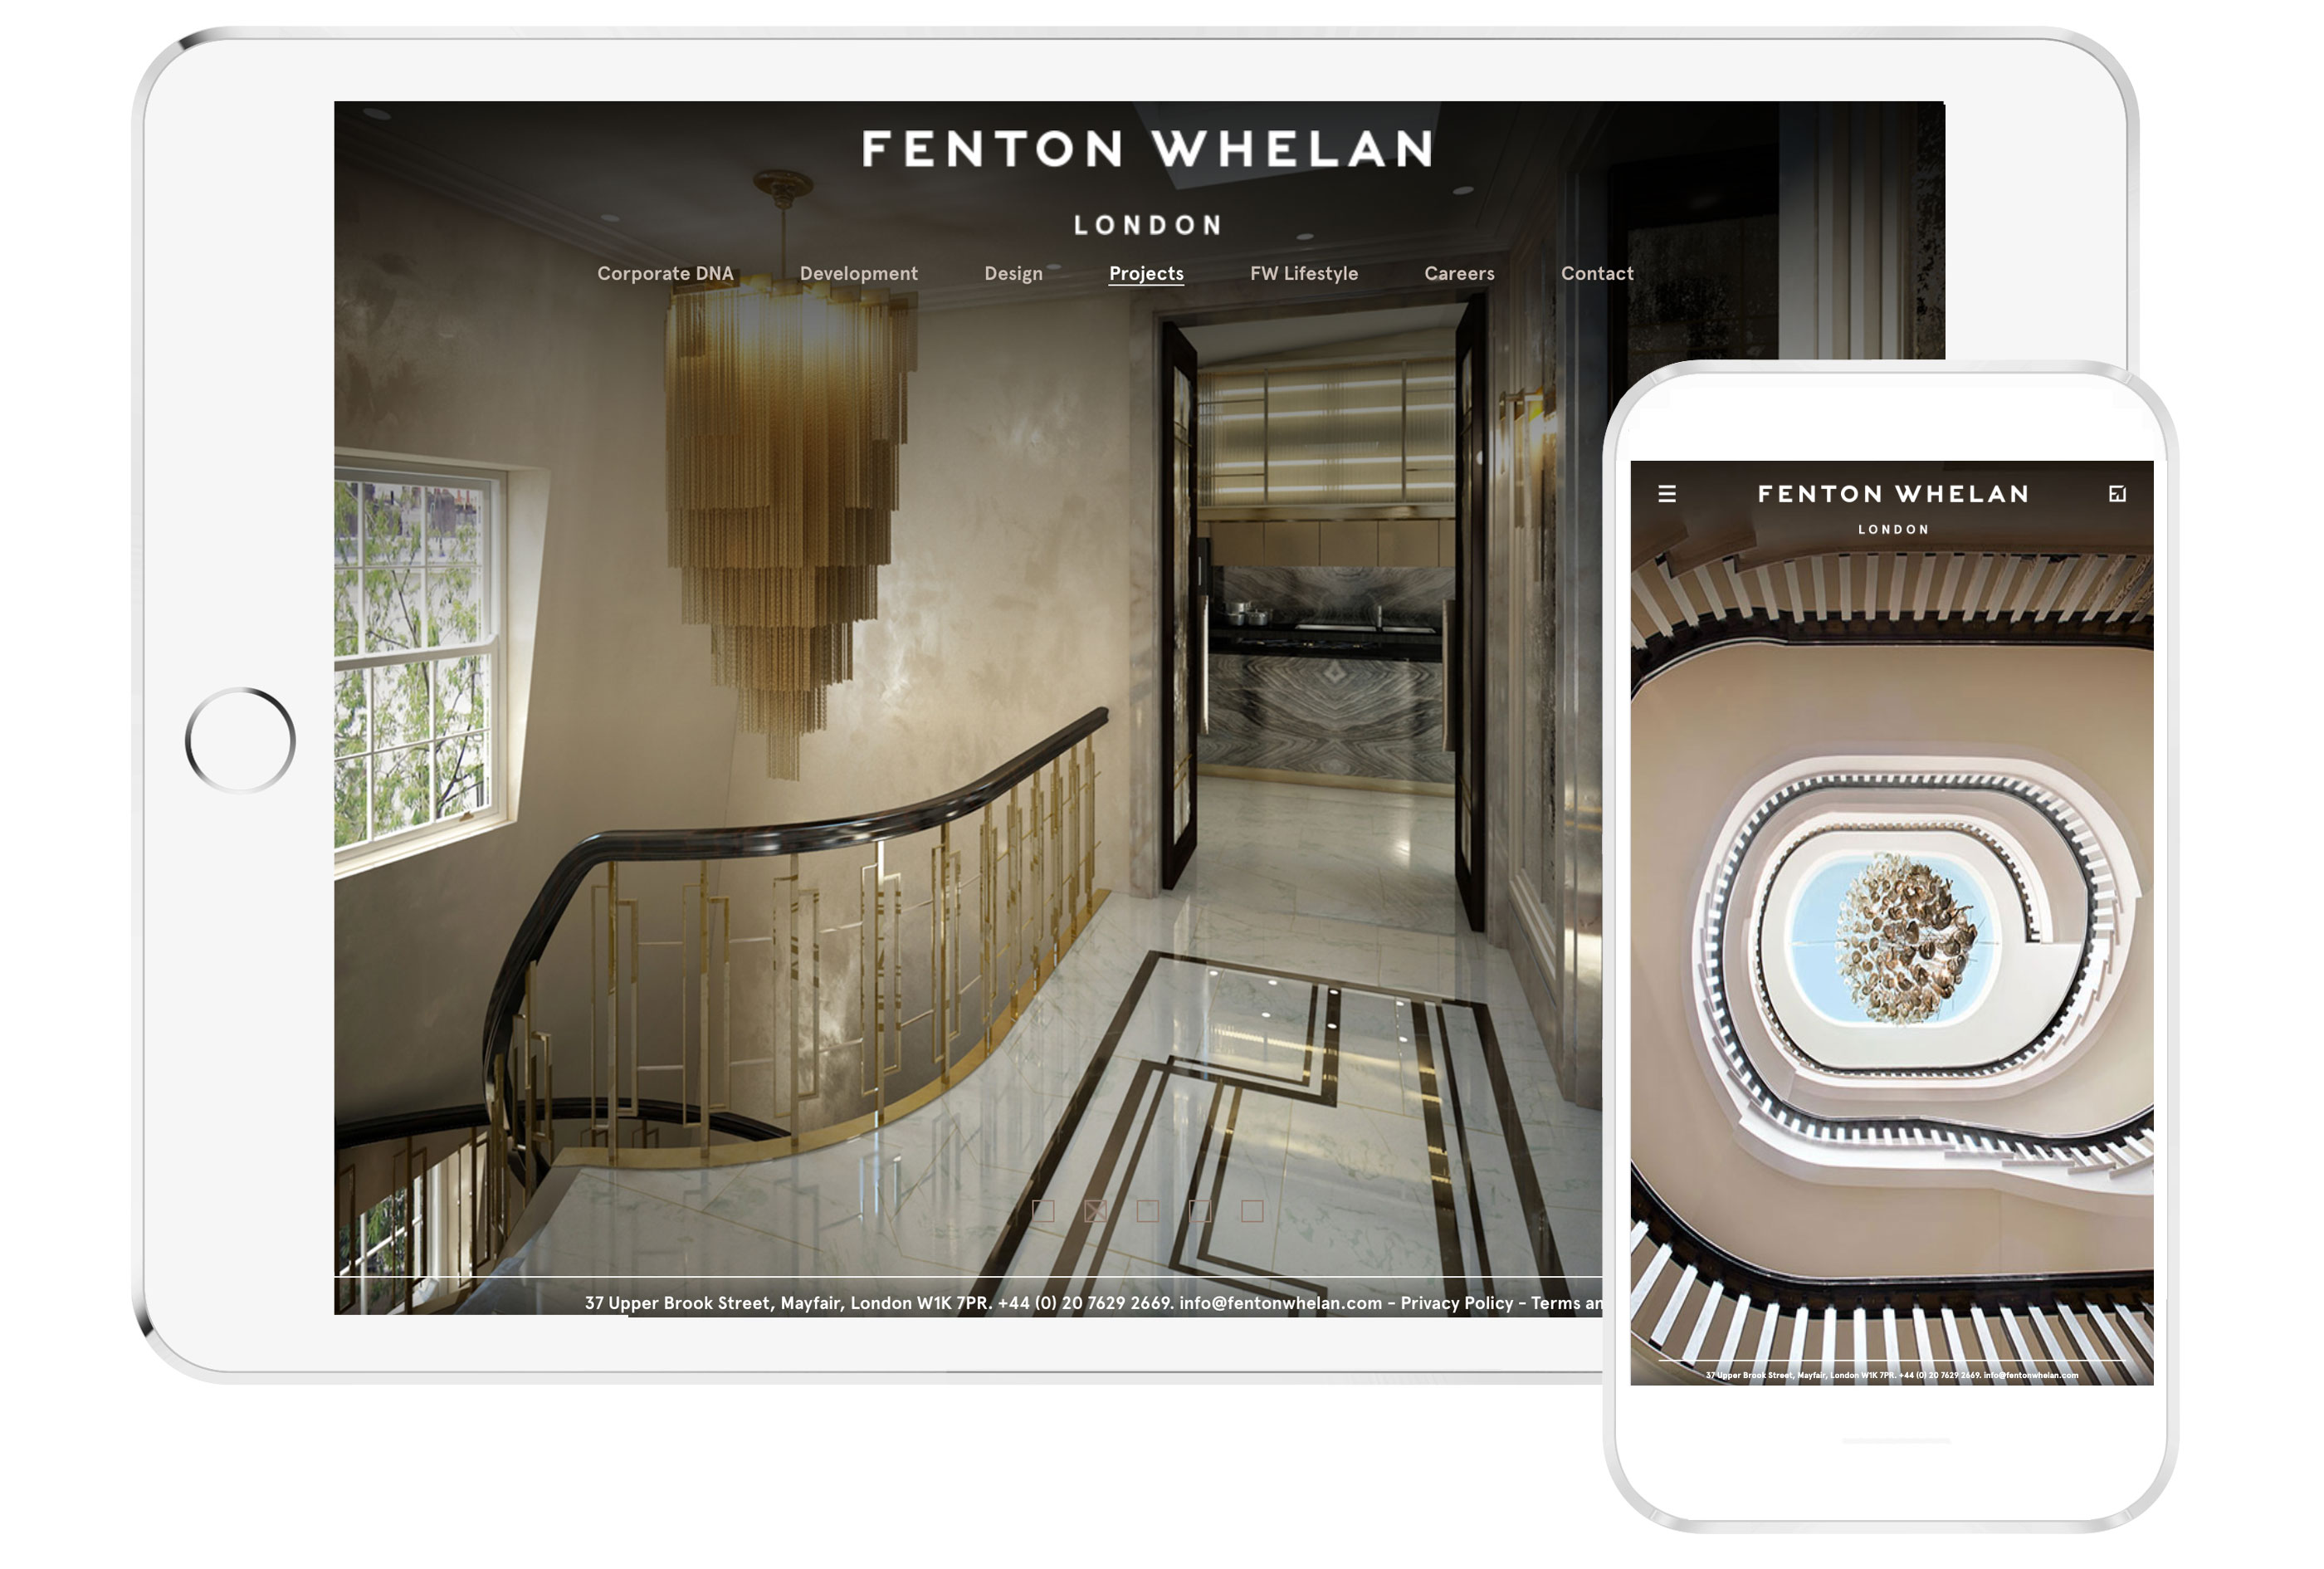 Fenton Whelan Web Design